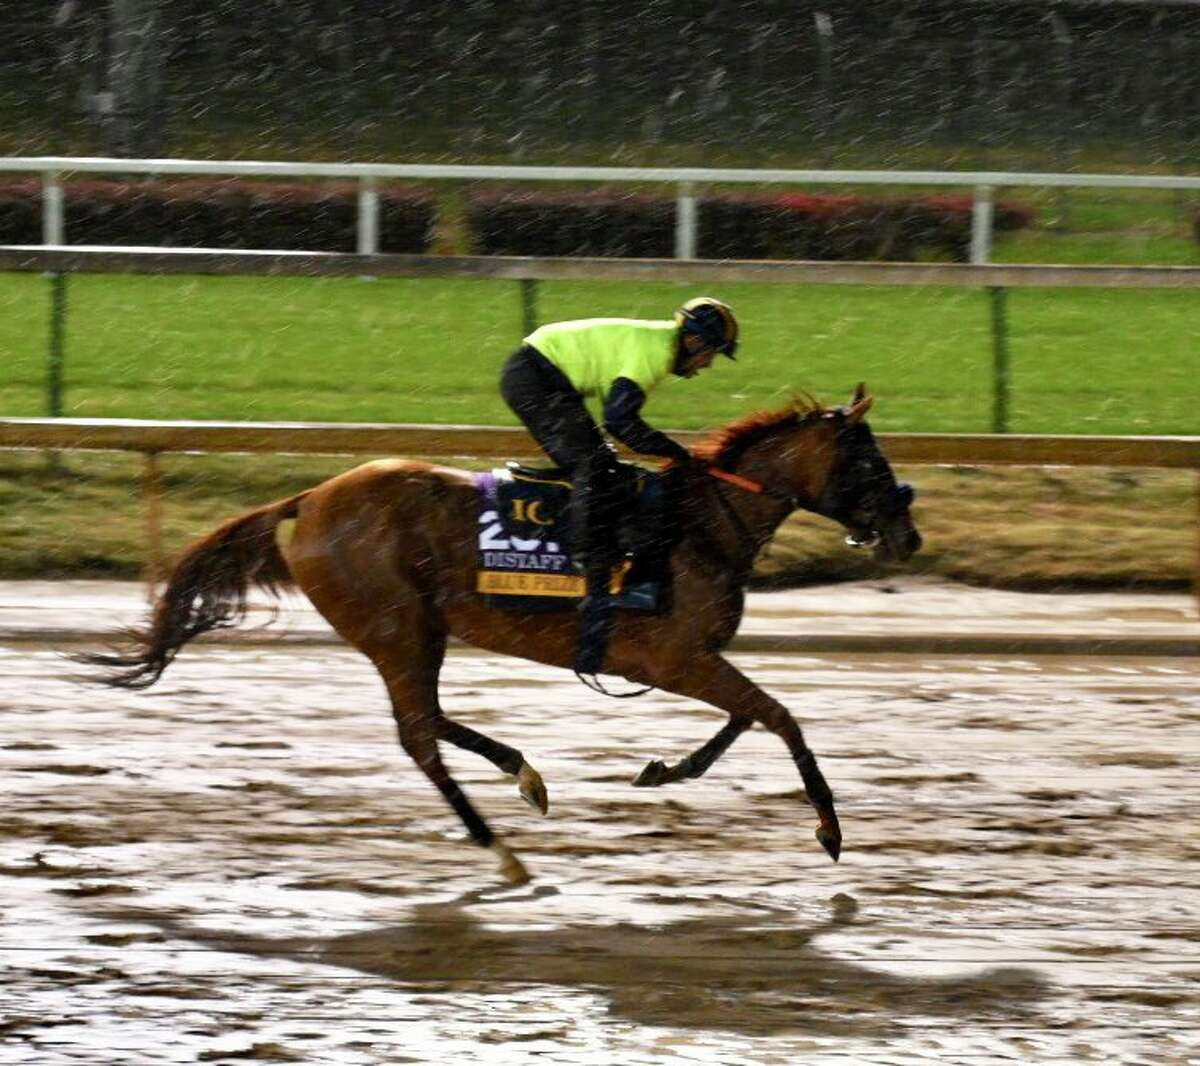 Rain showers at Churchill Downs didn't stop the Breeders Cup entrants from their morning exercise.